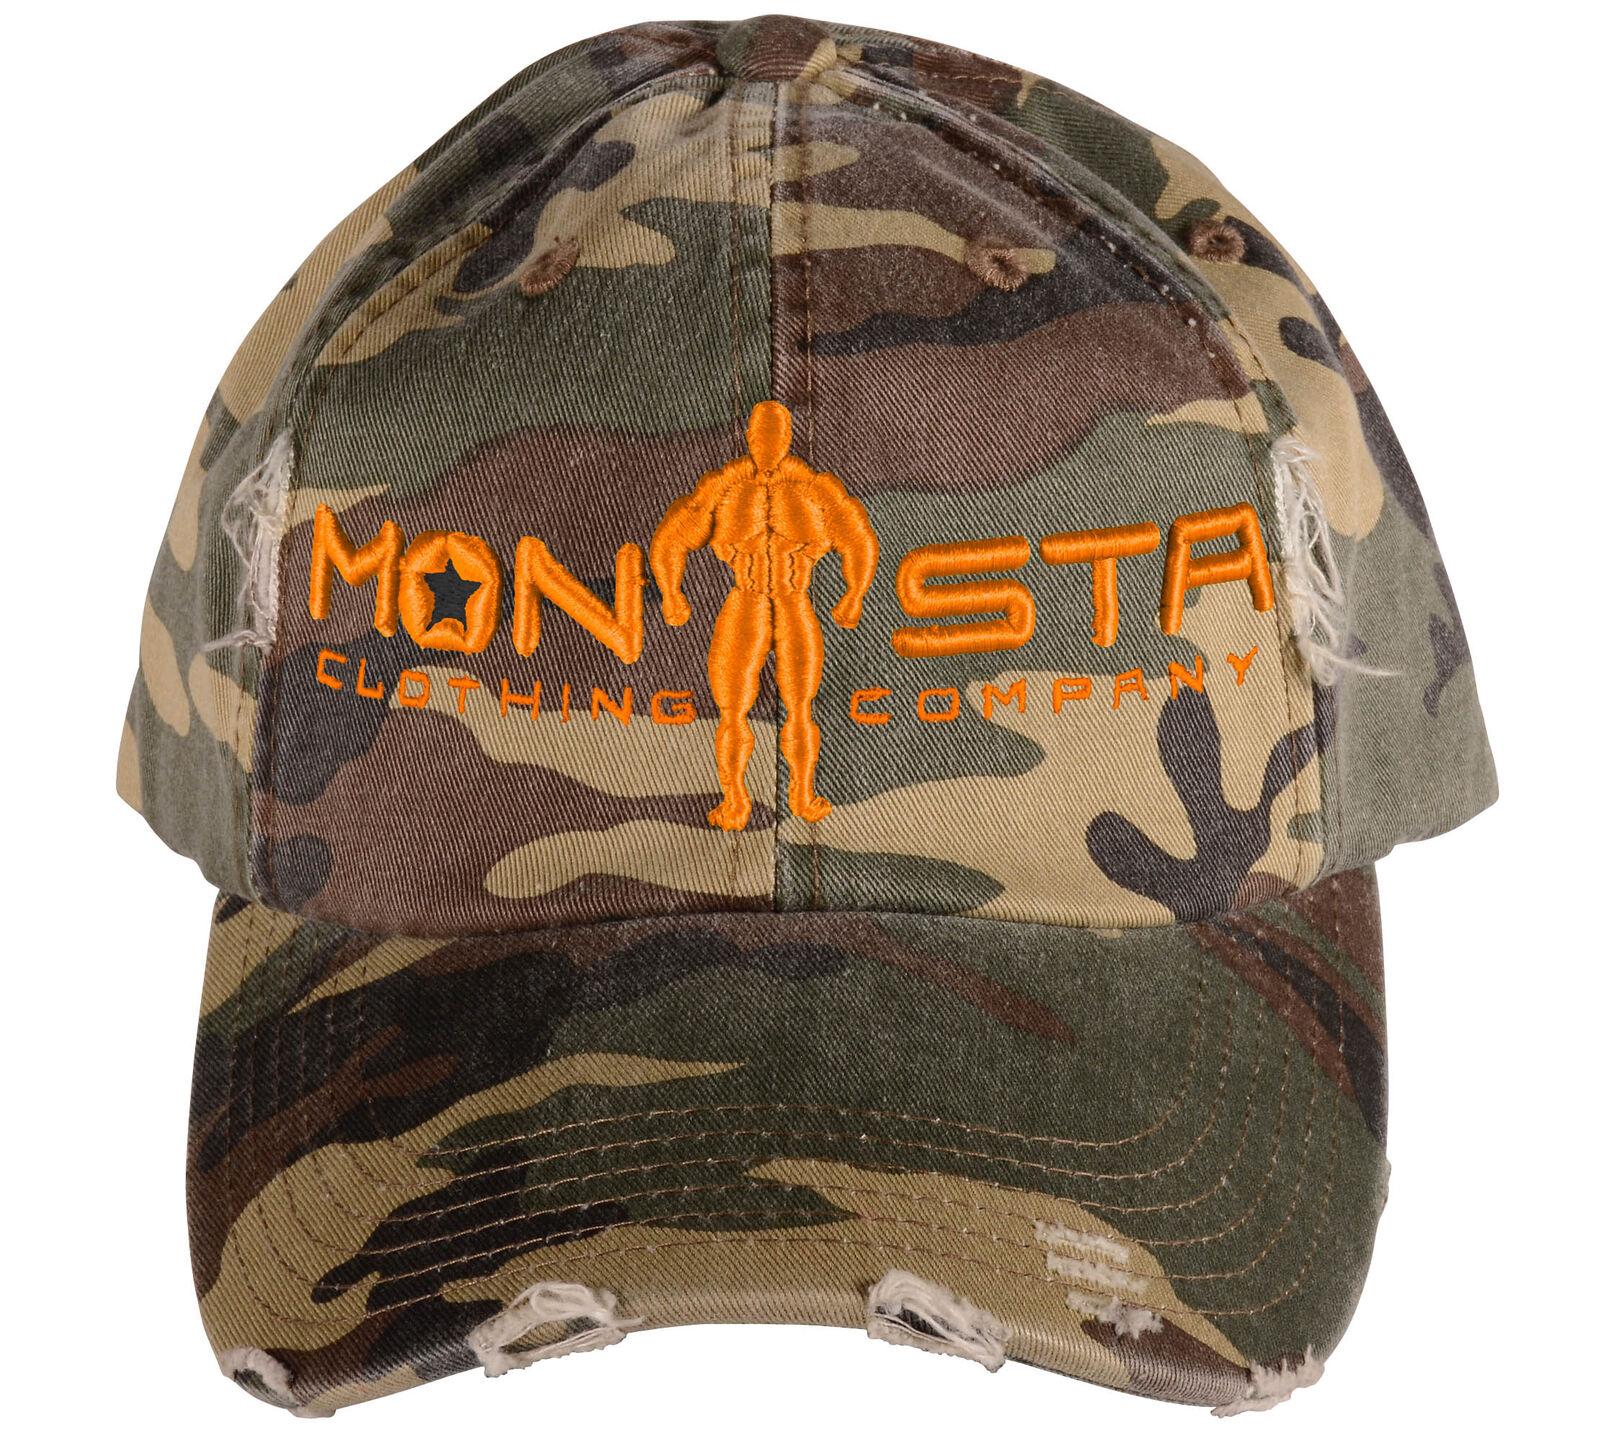 Monsta Clothing Distressed Camo Military Green Hat Curved Bill Cap / Hat Green Orange f9334e